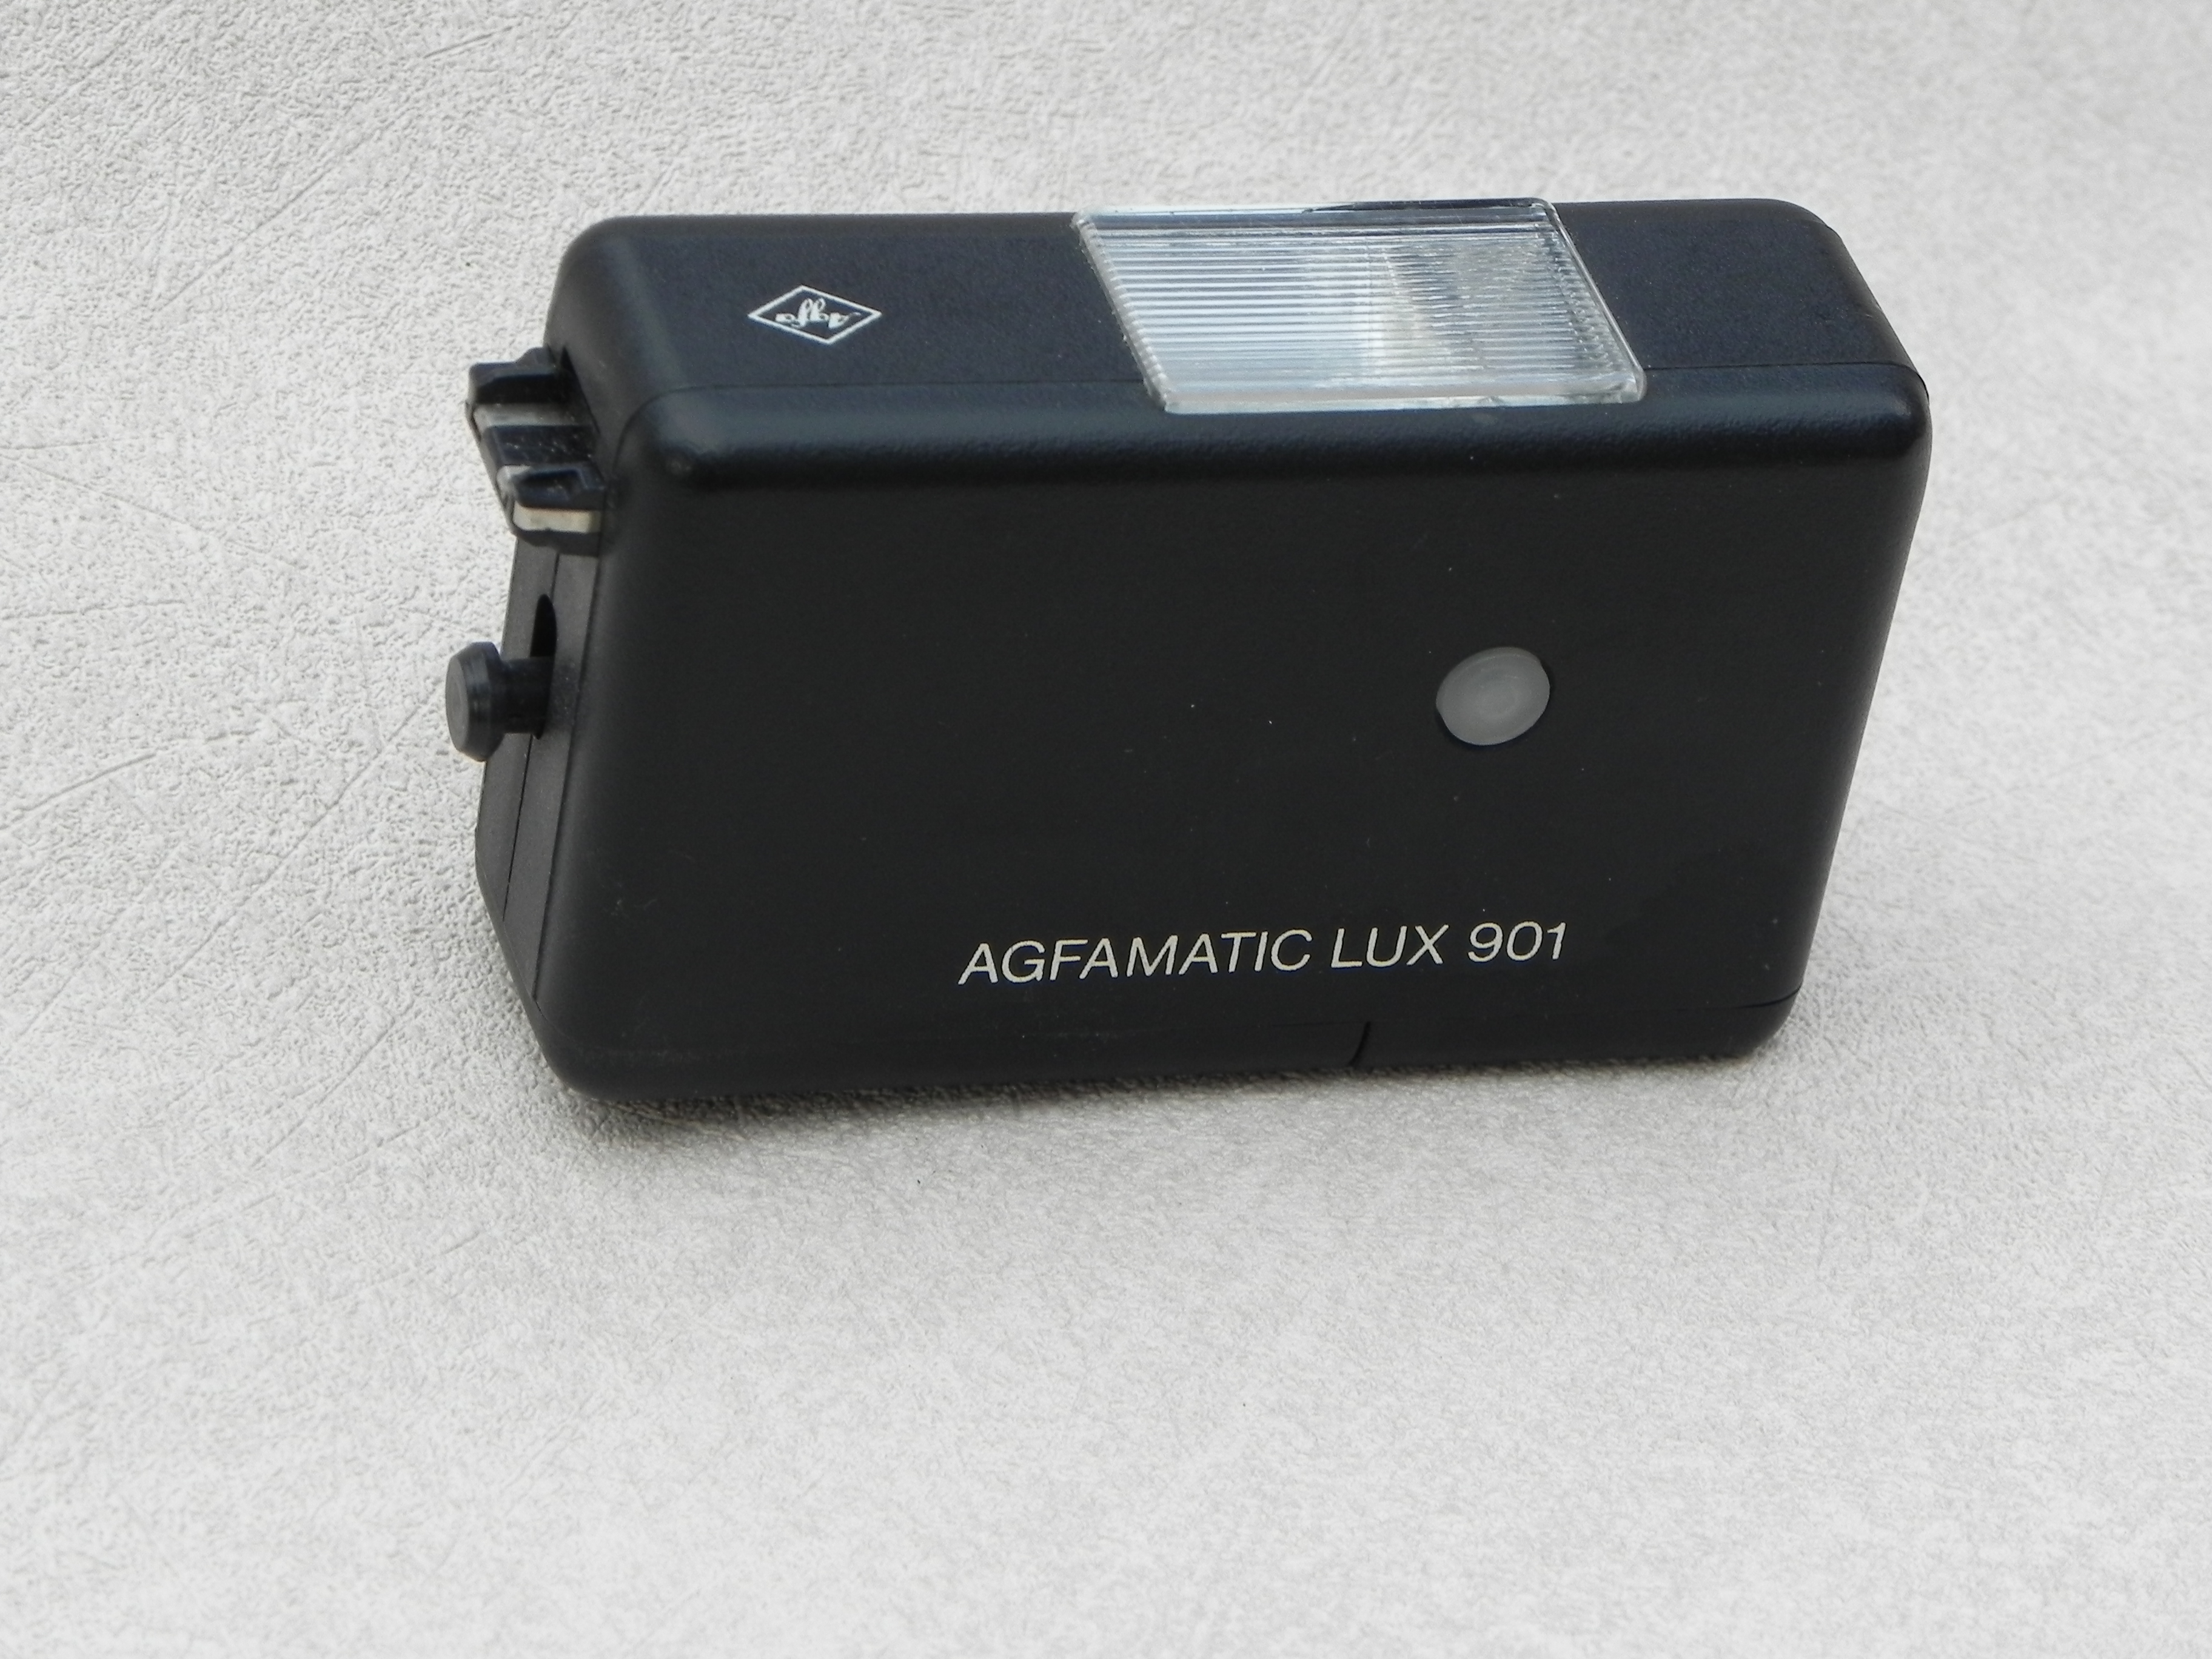 agfa_lux_901